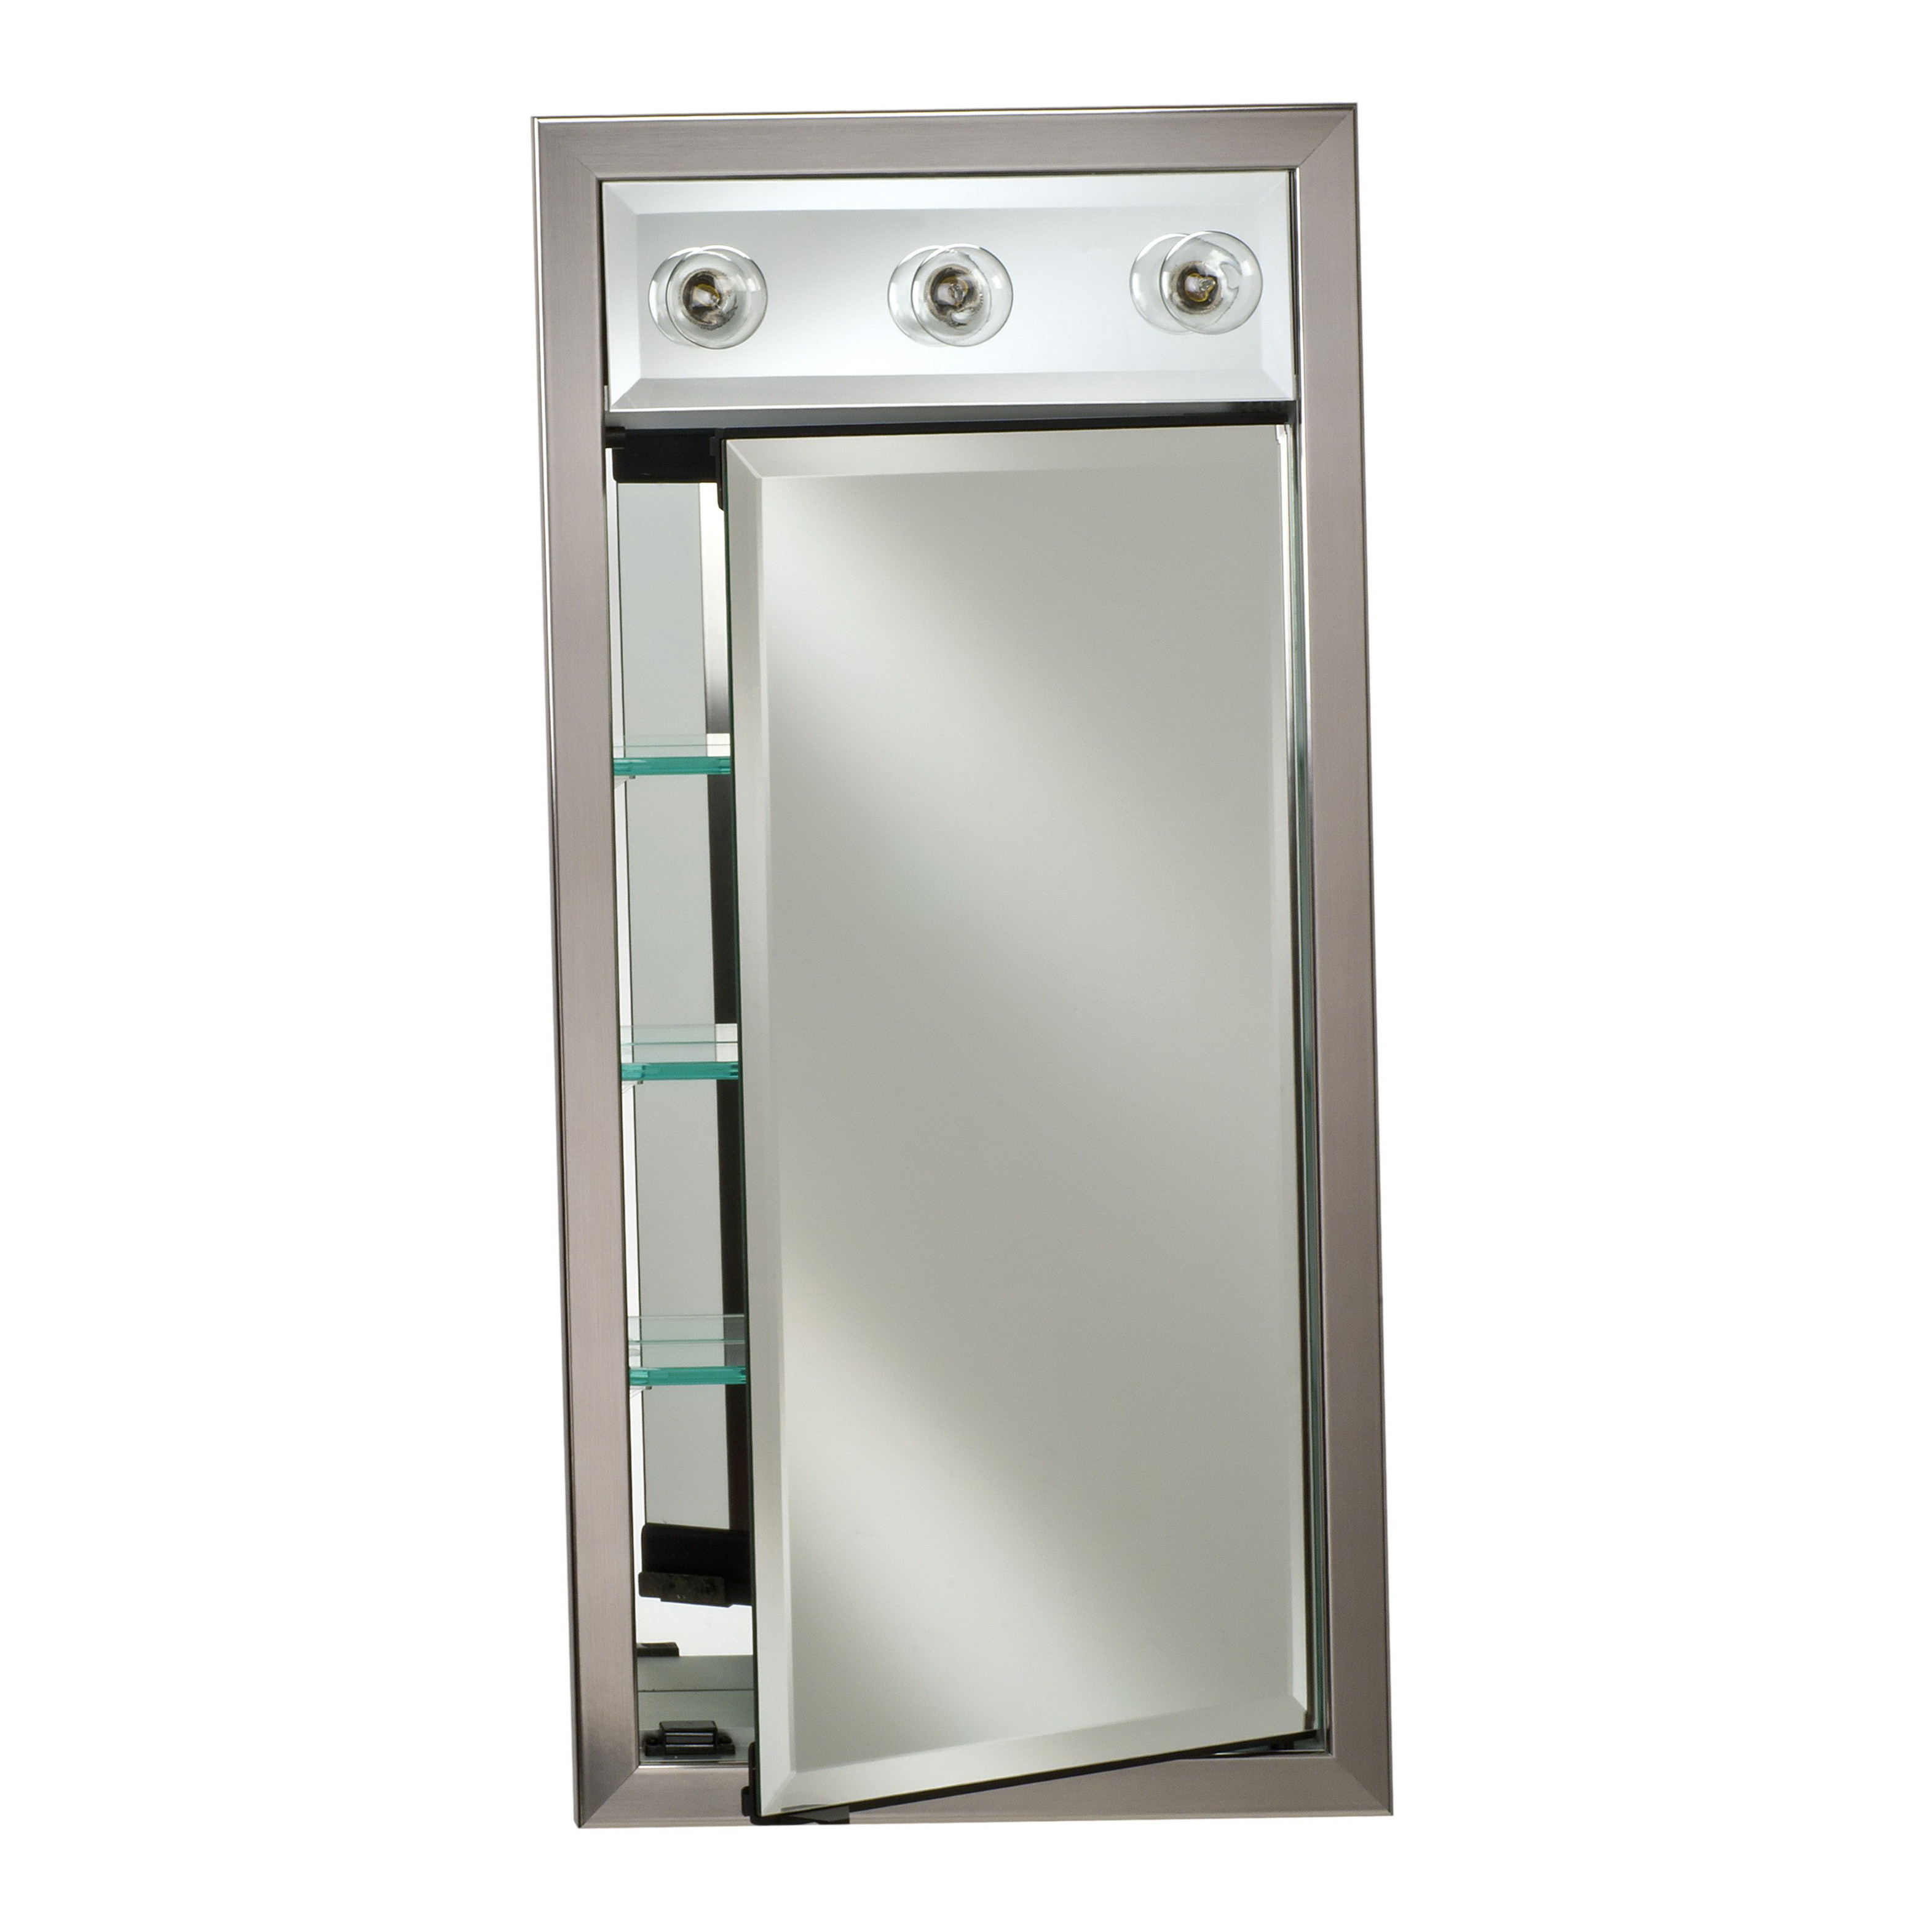 Best ideas about Lighted Medicine Cabinet . Save or Pin Lighted Medicine Cabinets Recessed Now.